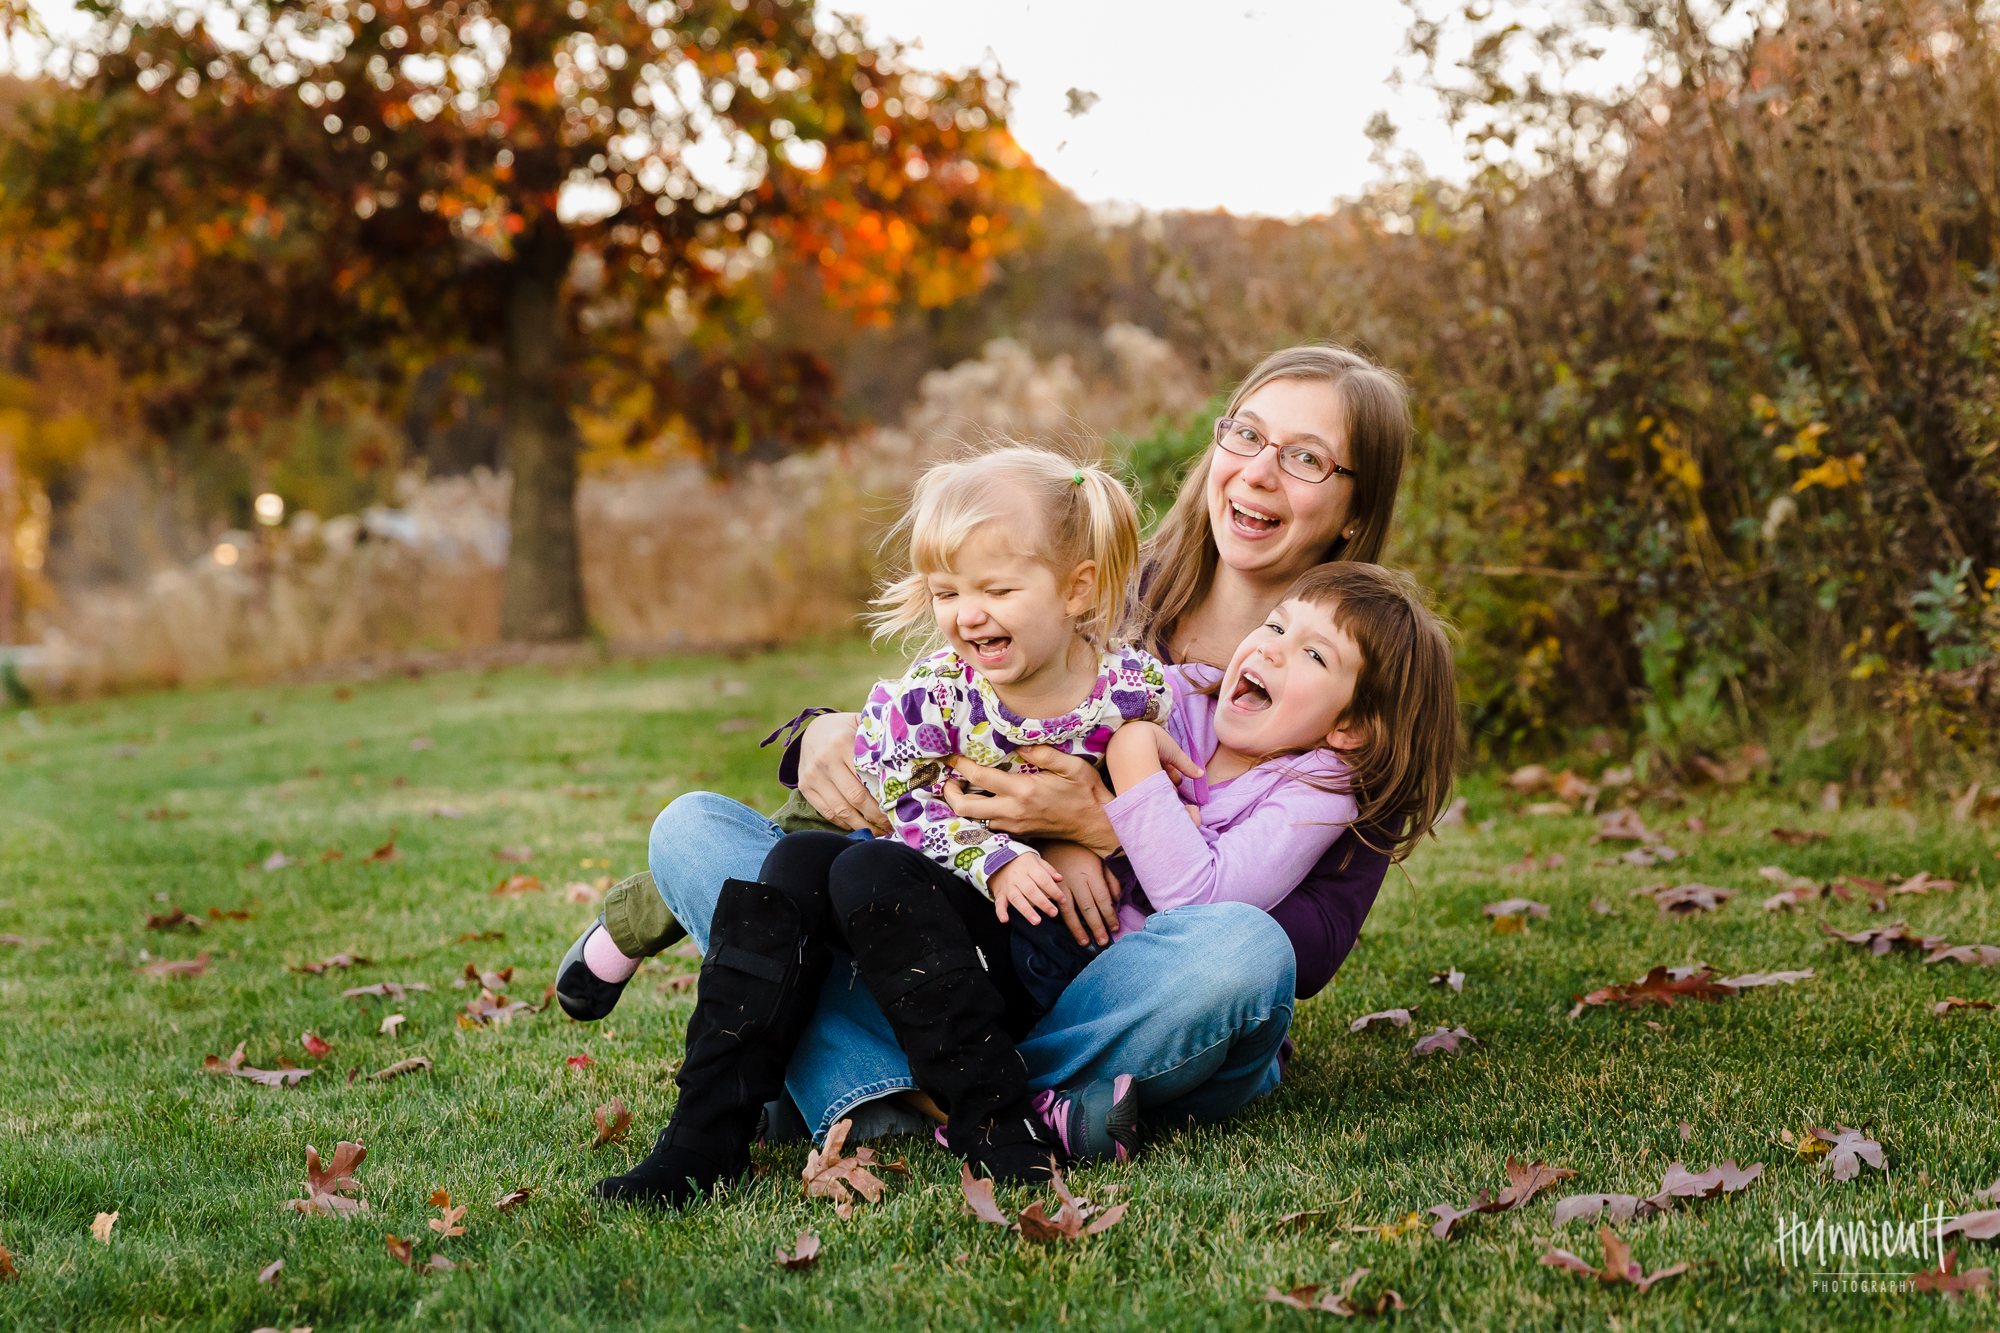 Outdoor-Park-Family-Hunnicutt-Photography-Rebecca-Hunnicutt-Farren-USA-16